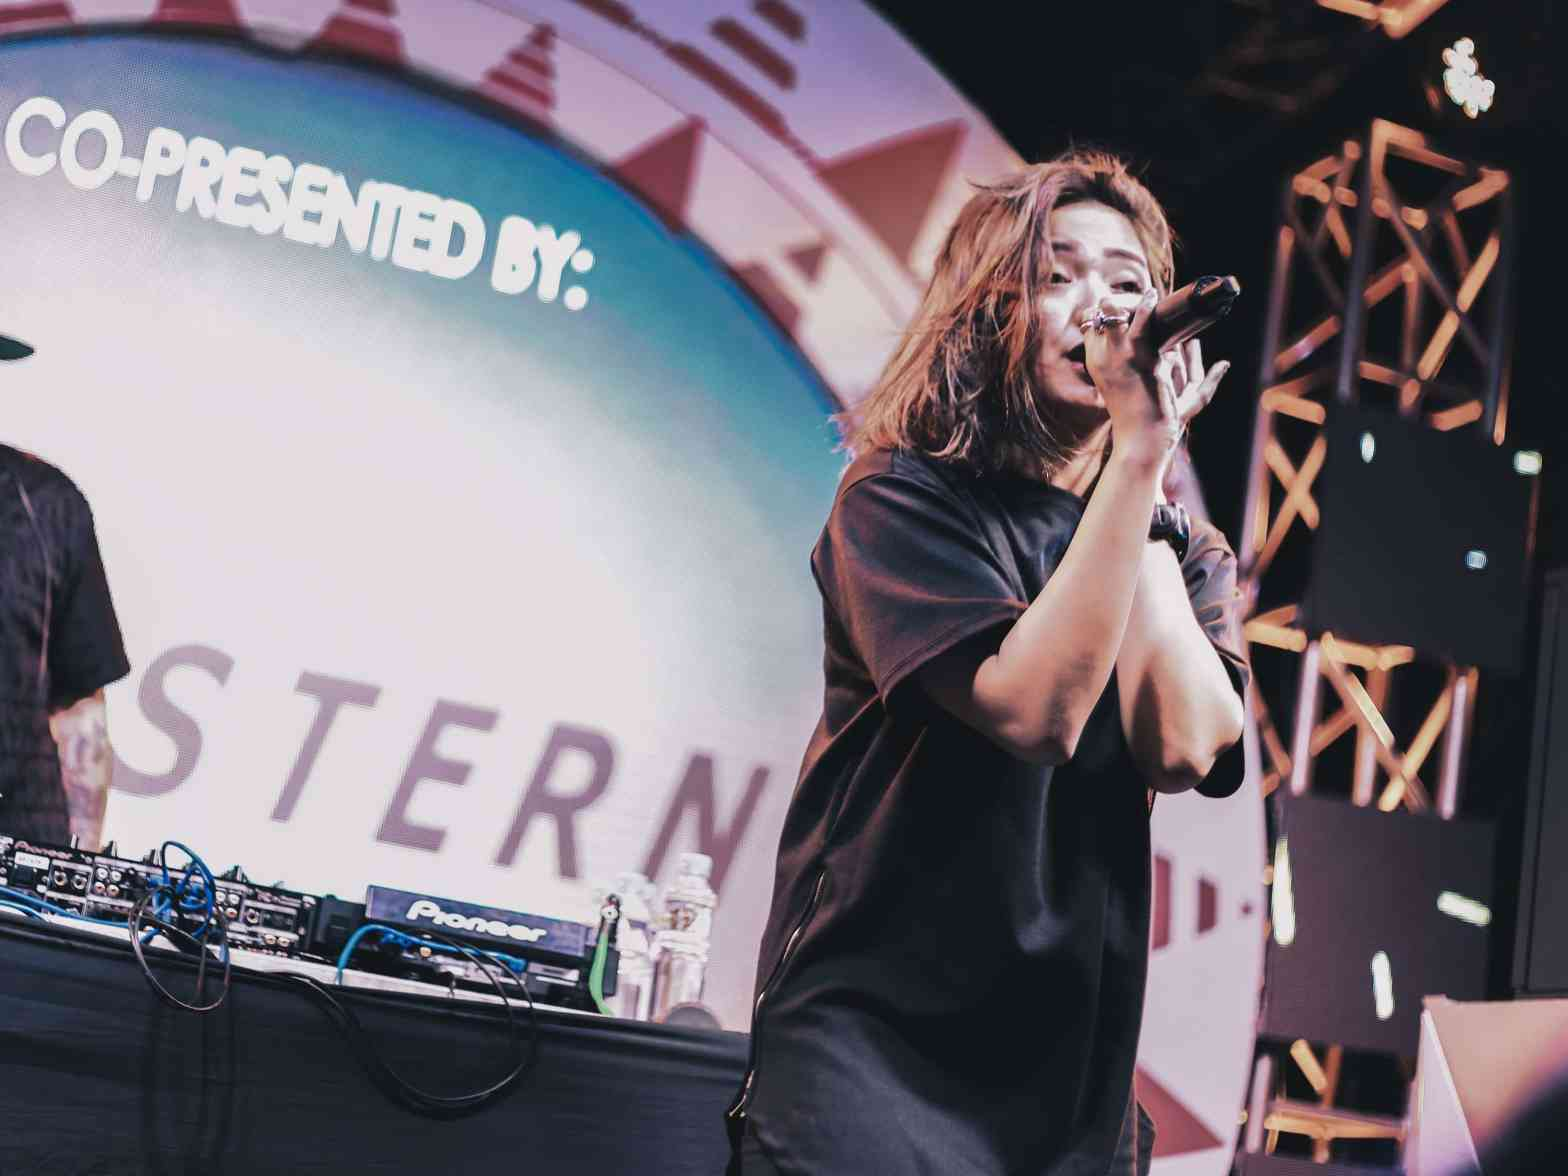 Joyce Pring vocalizing on stage